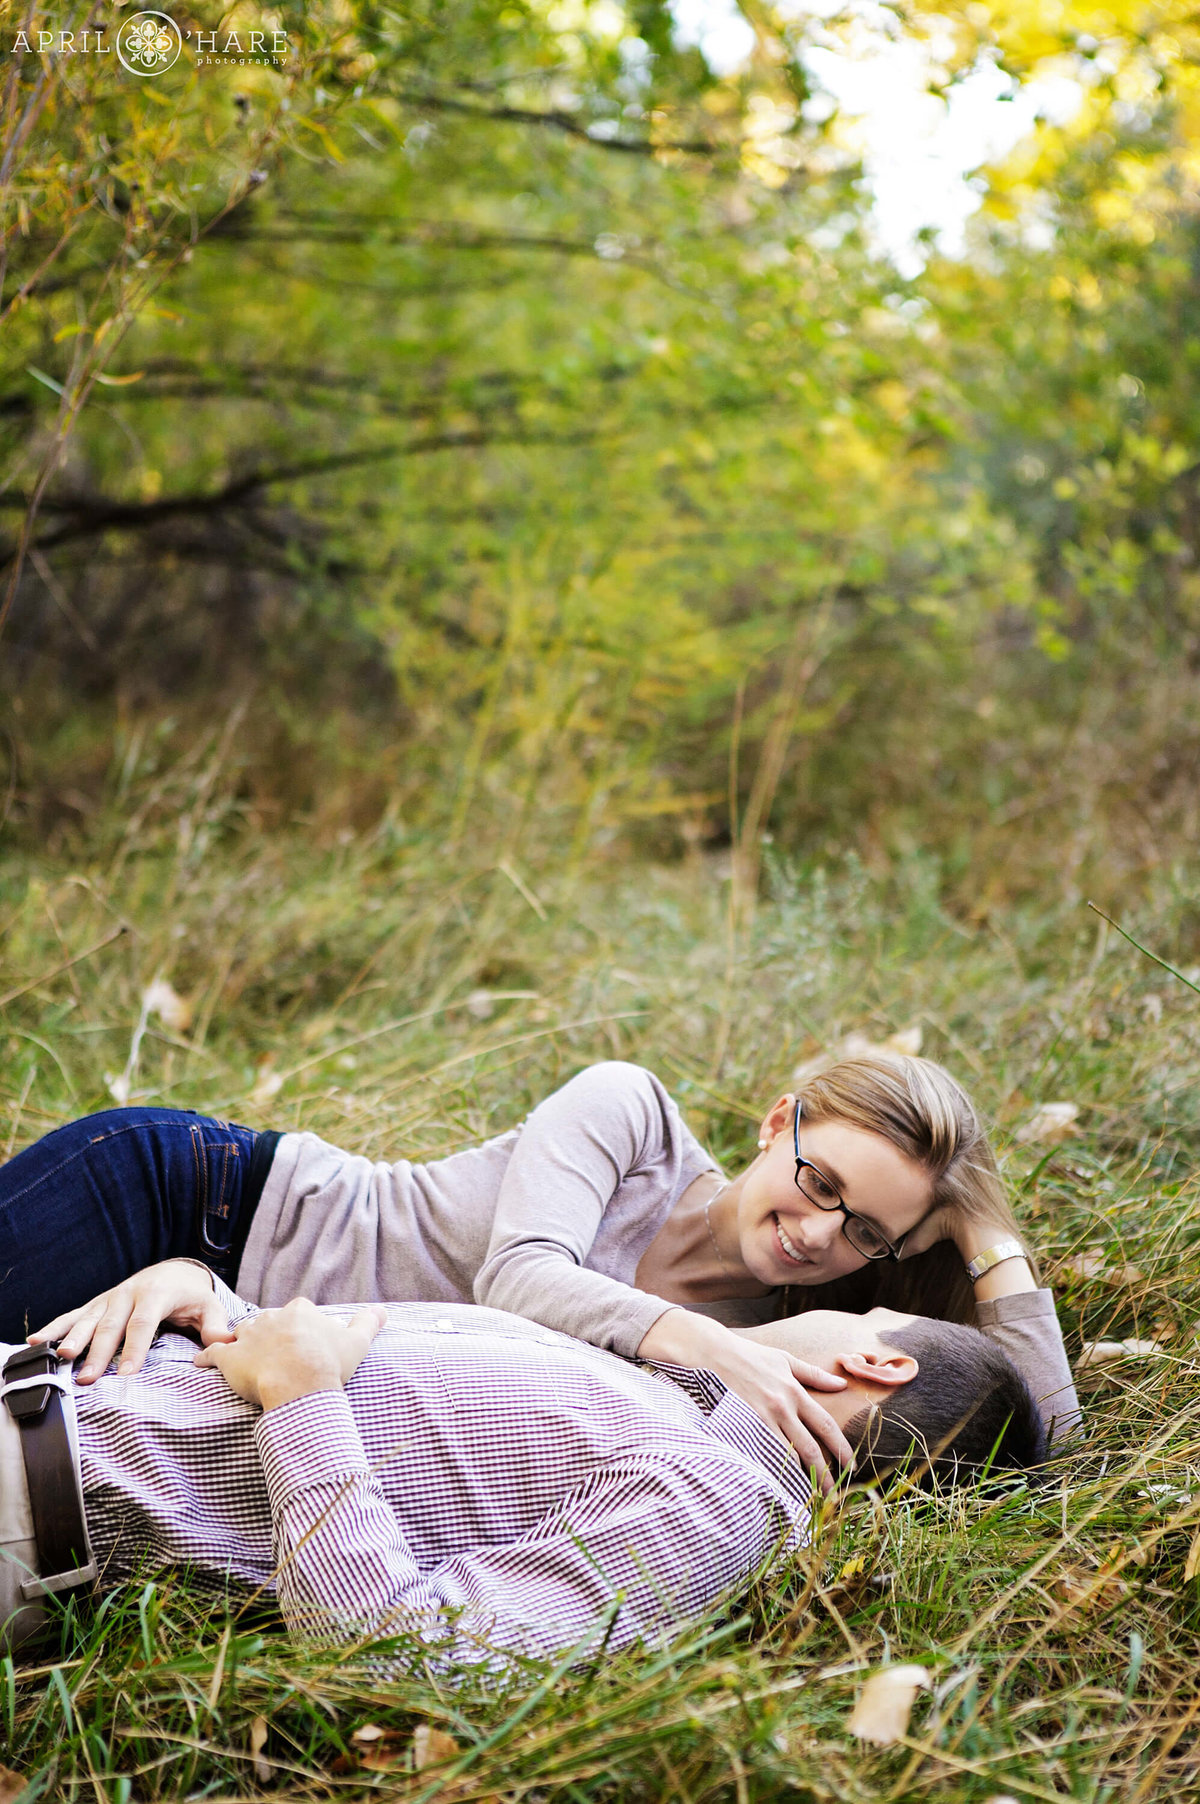 Romantic fall engagement photography with ethereal light at Four Mile House in Cherry Creek